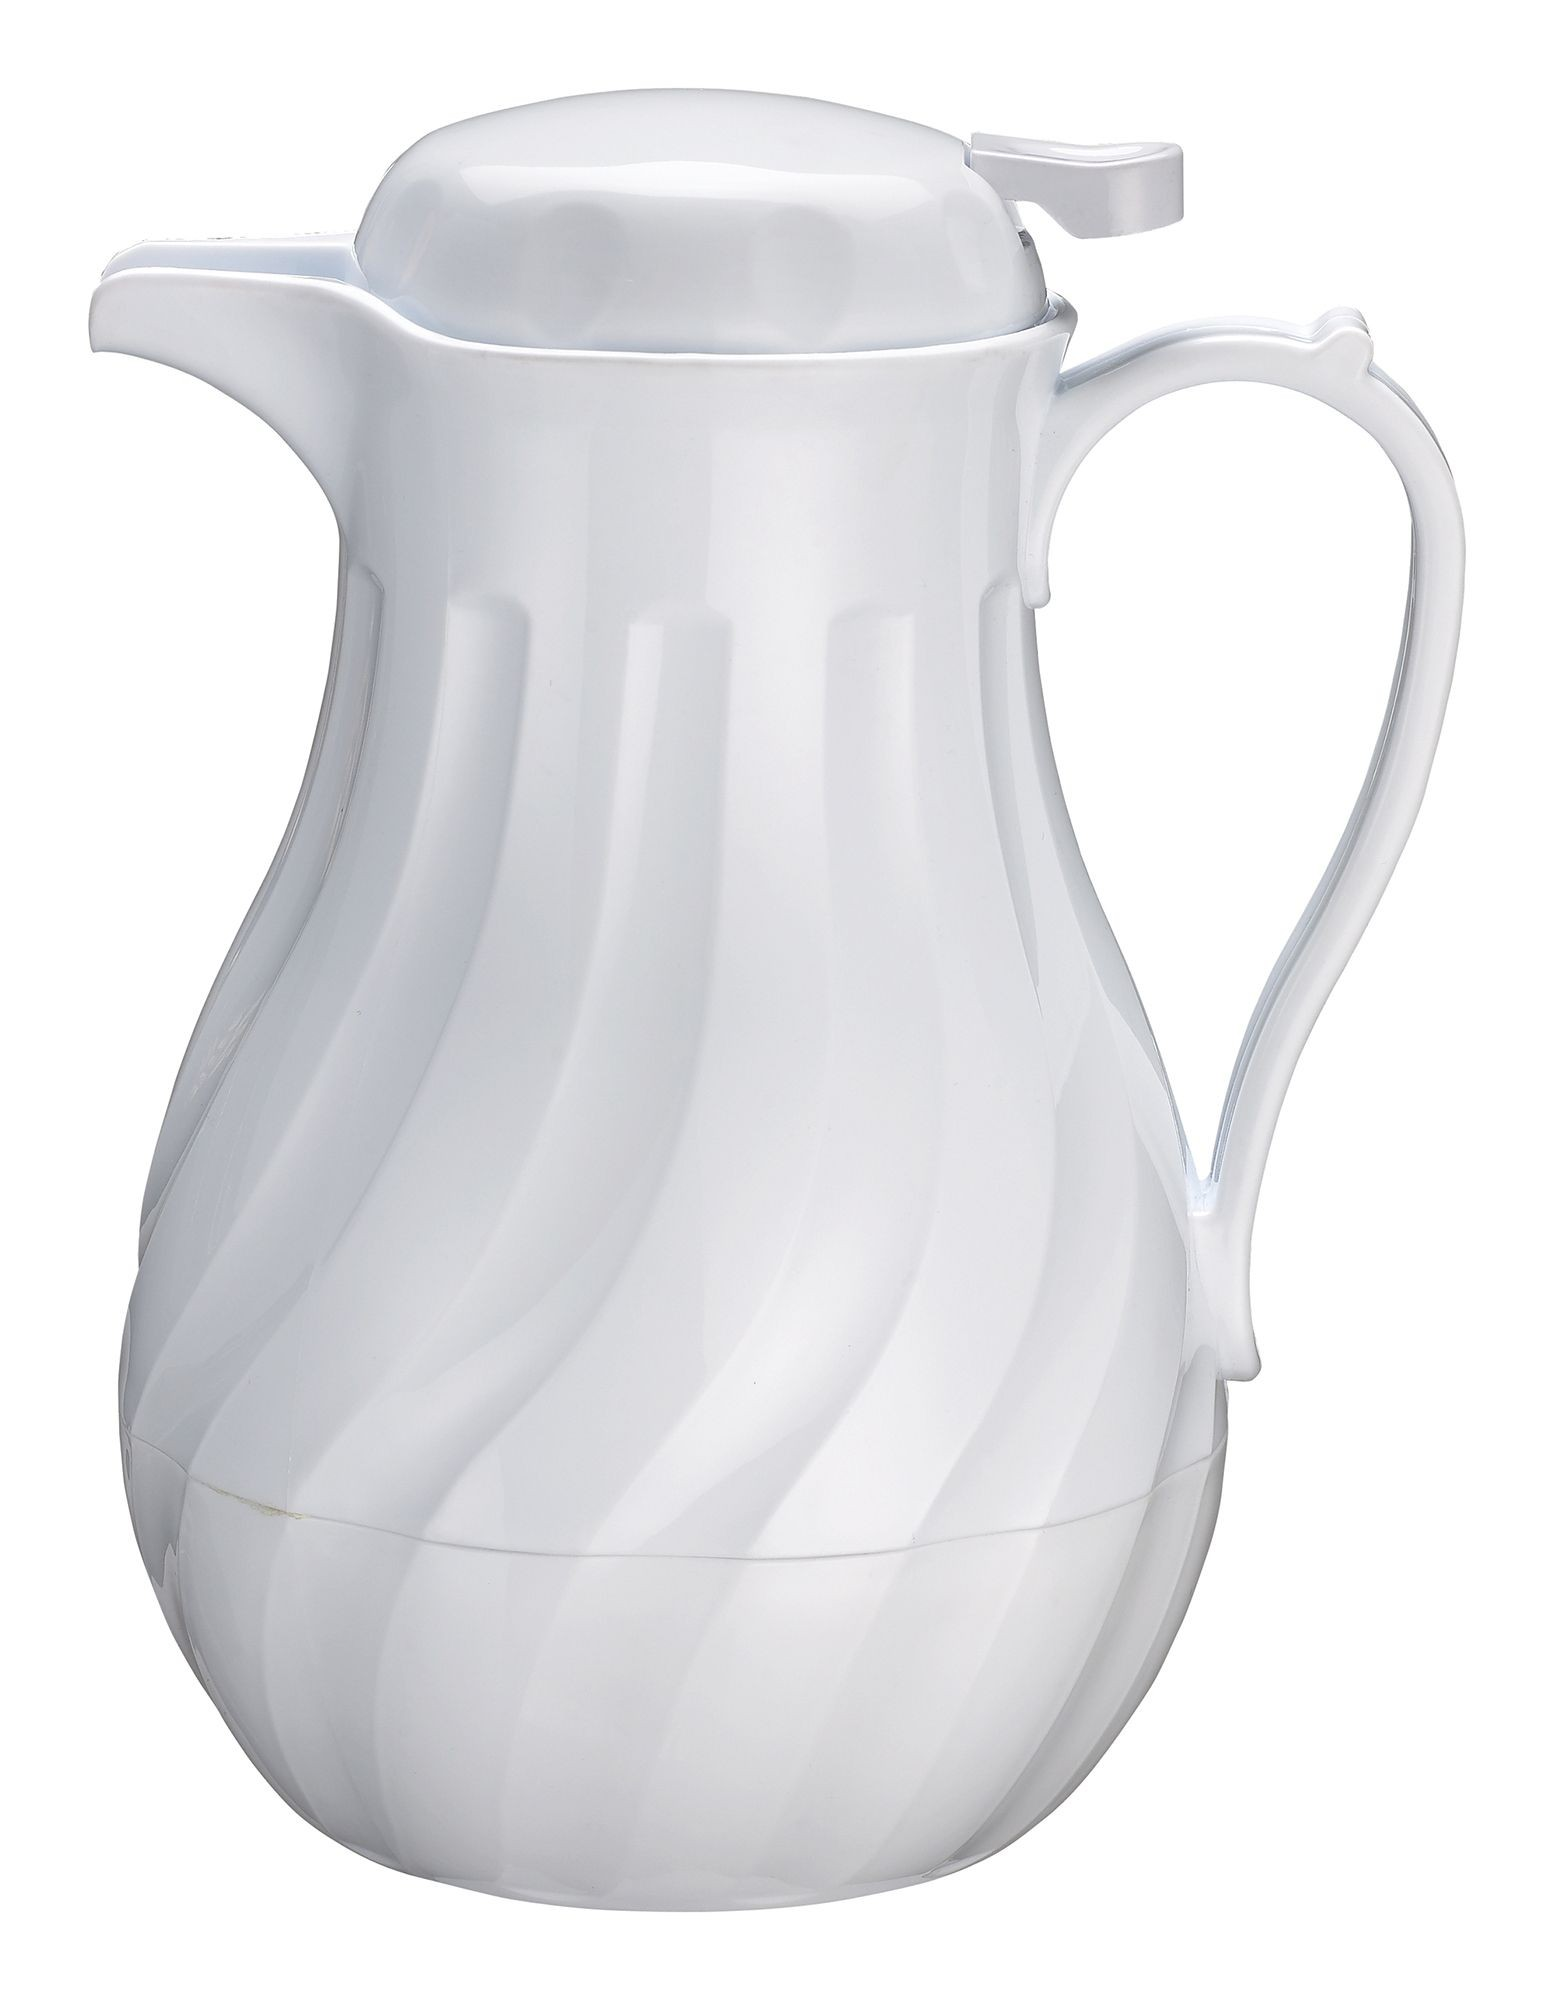 20 Oz. White Swirl Thermal Carafe